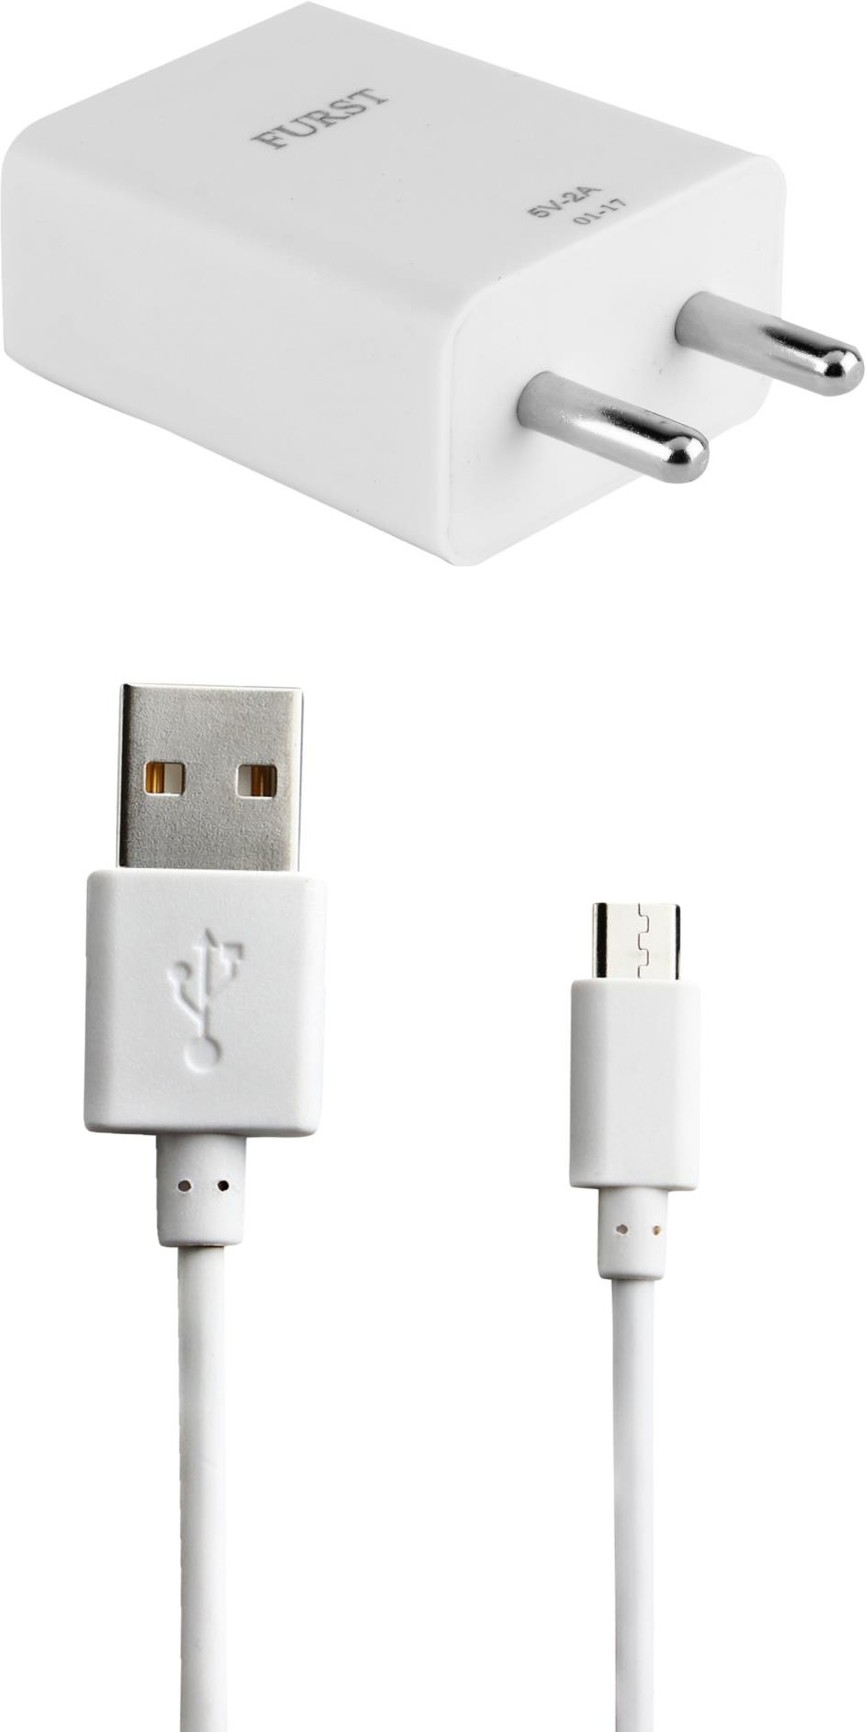 Furst 2A. Fast Charger with Cable (1 Mtr) For Samsung Galaxy J7 Prime Mobile Charger(White)